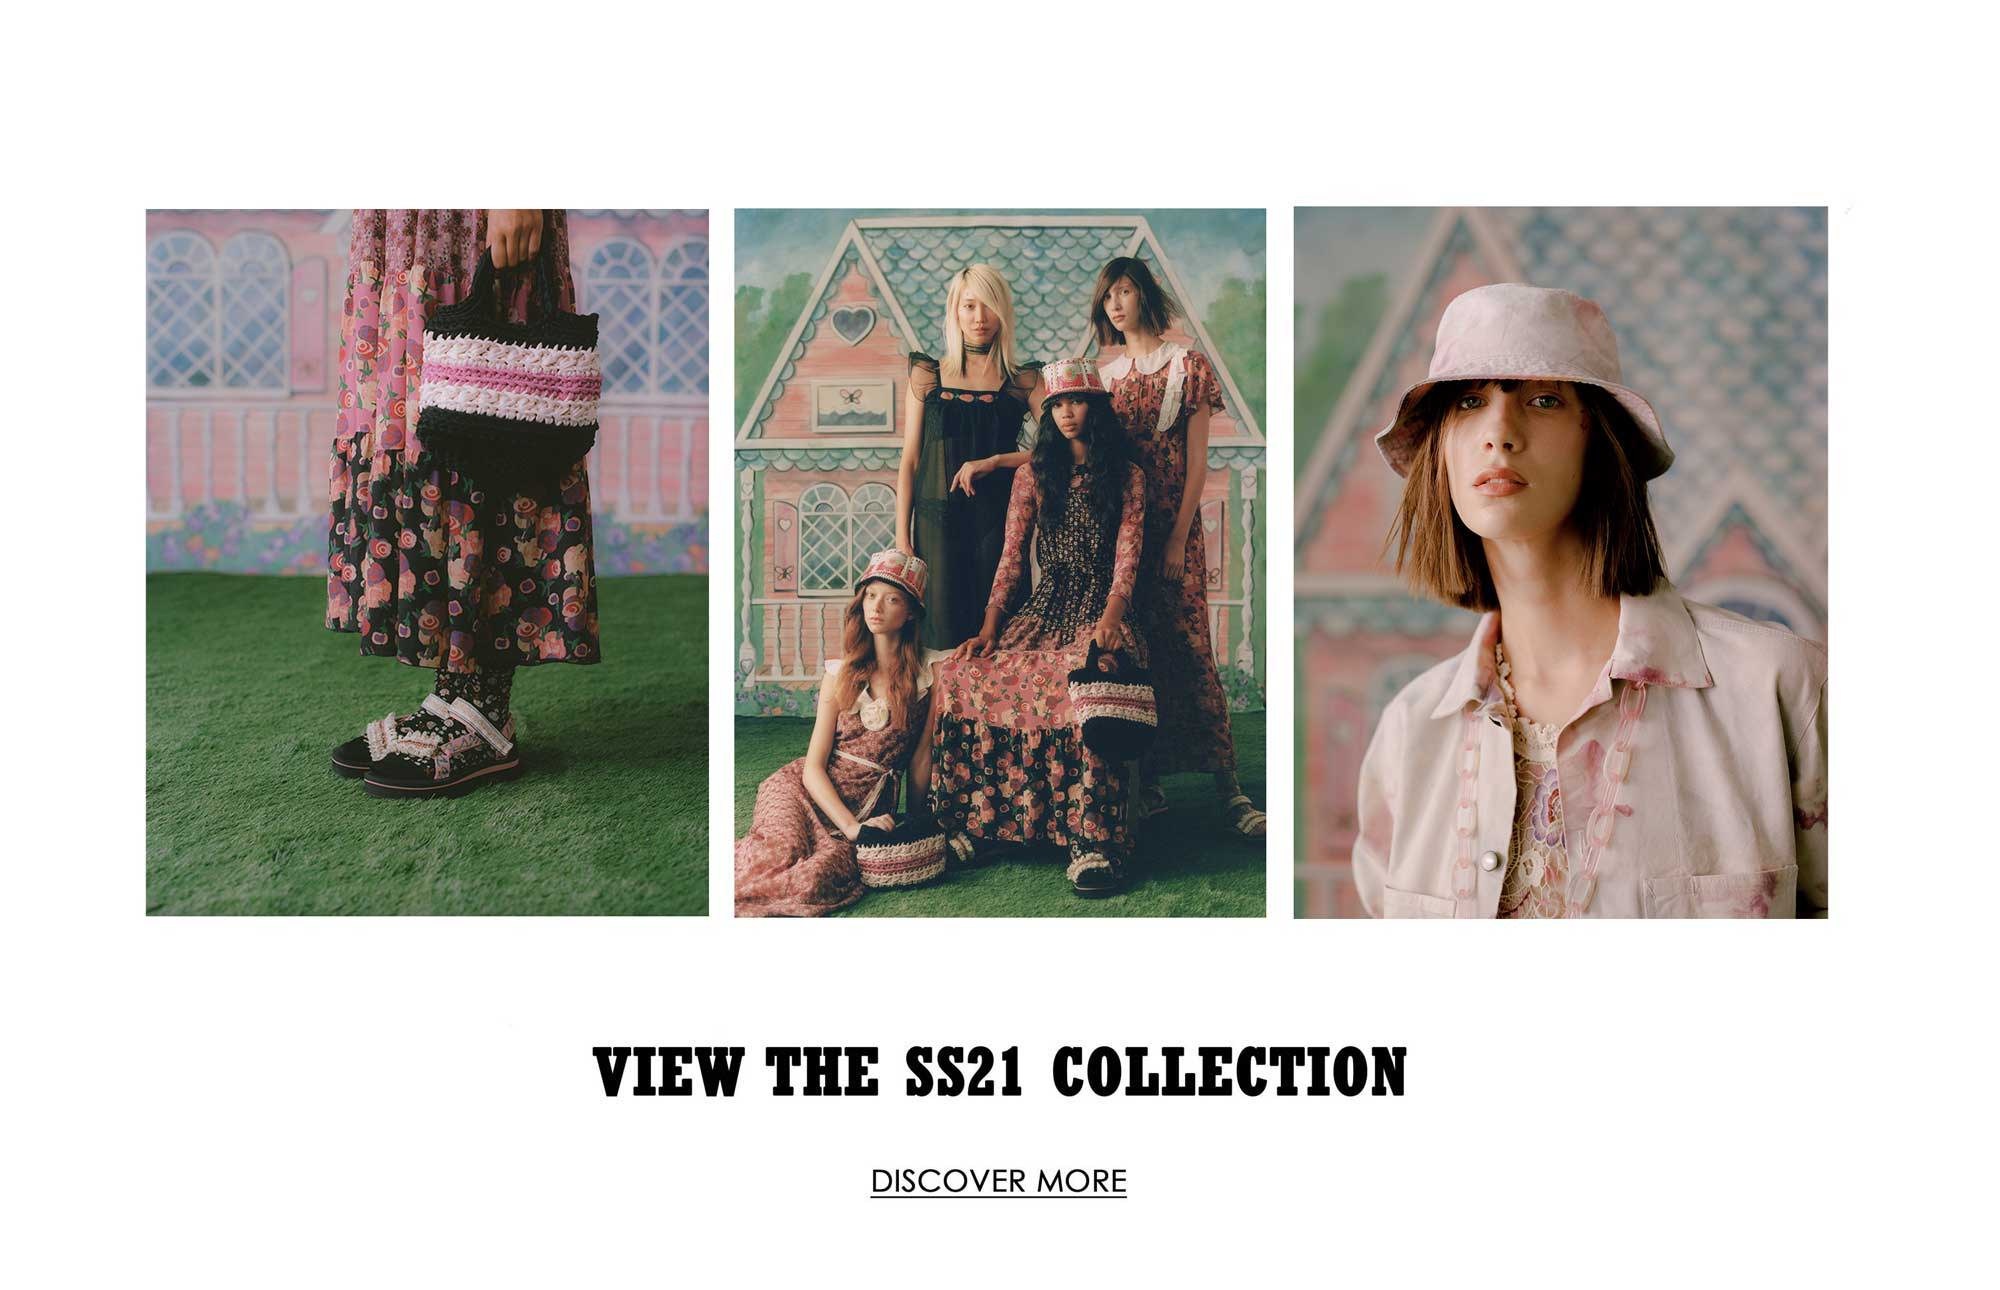 Discover the Spring Summer 2021 Collection. Jordan Daniels, Soo Joo Park, Sara Grace Wallerstadt and Sasha Kynsh  wear the newest Anna Sui Collection